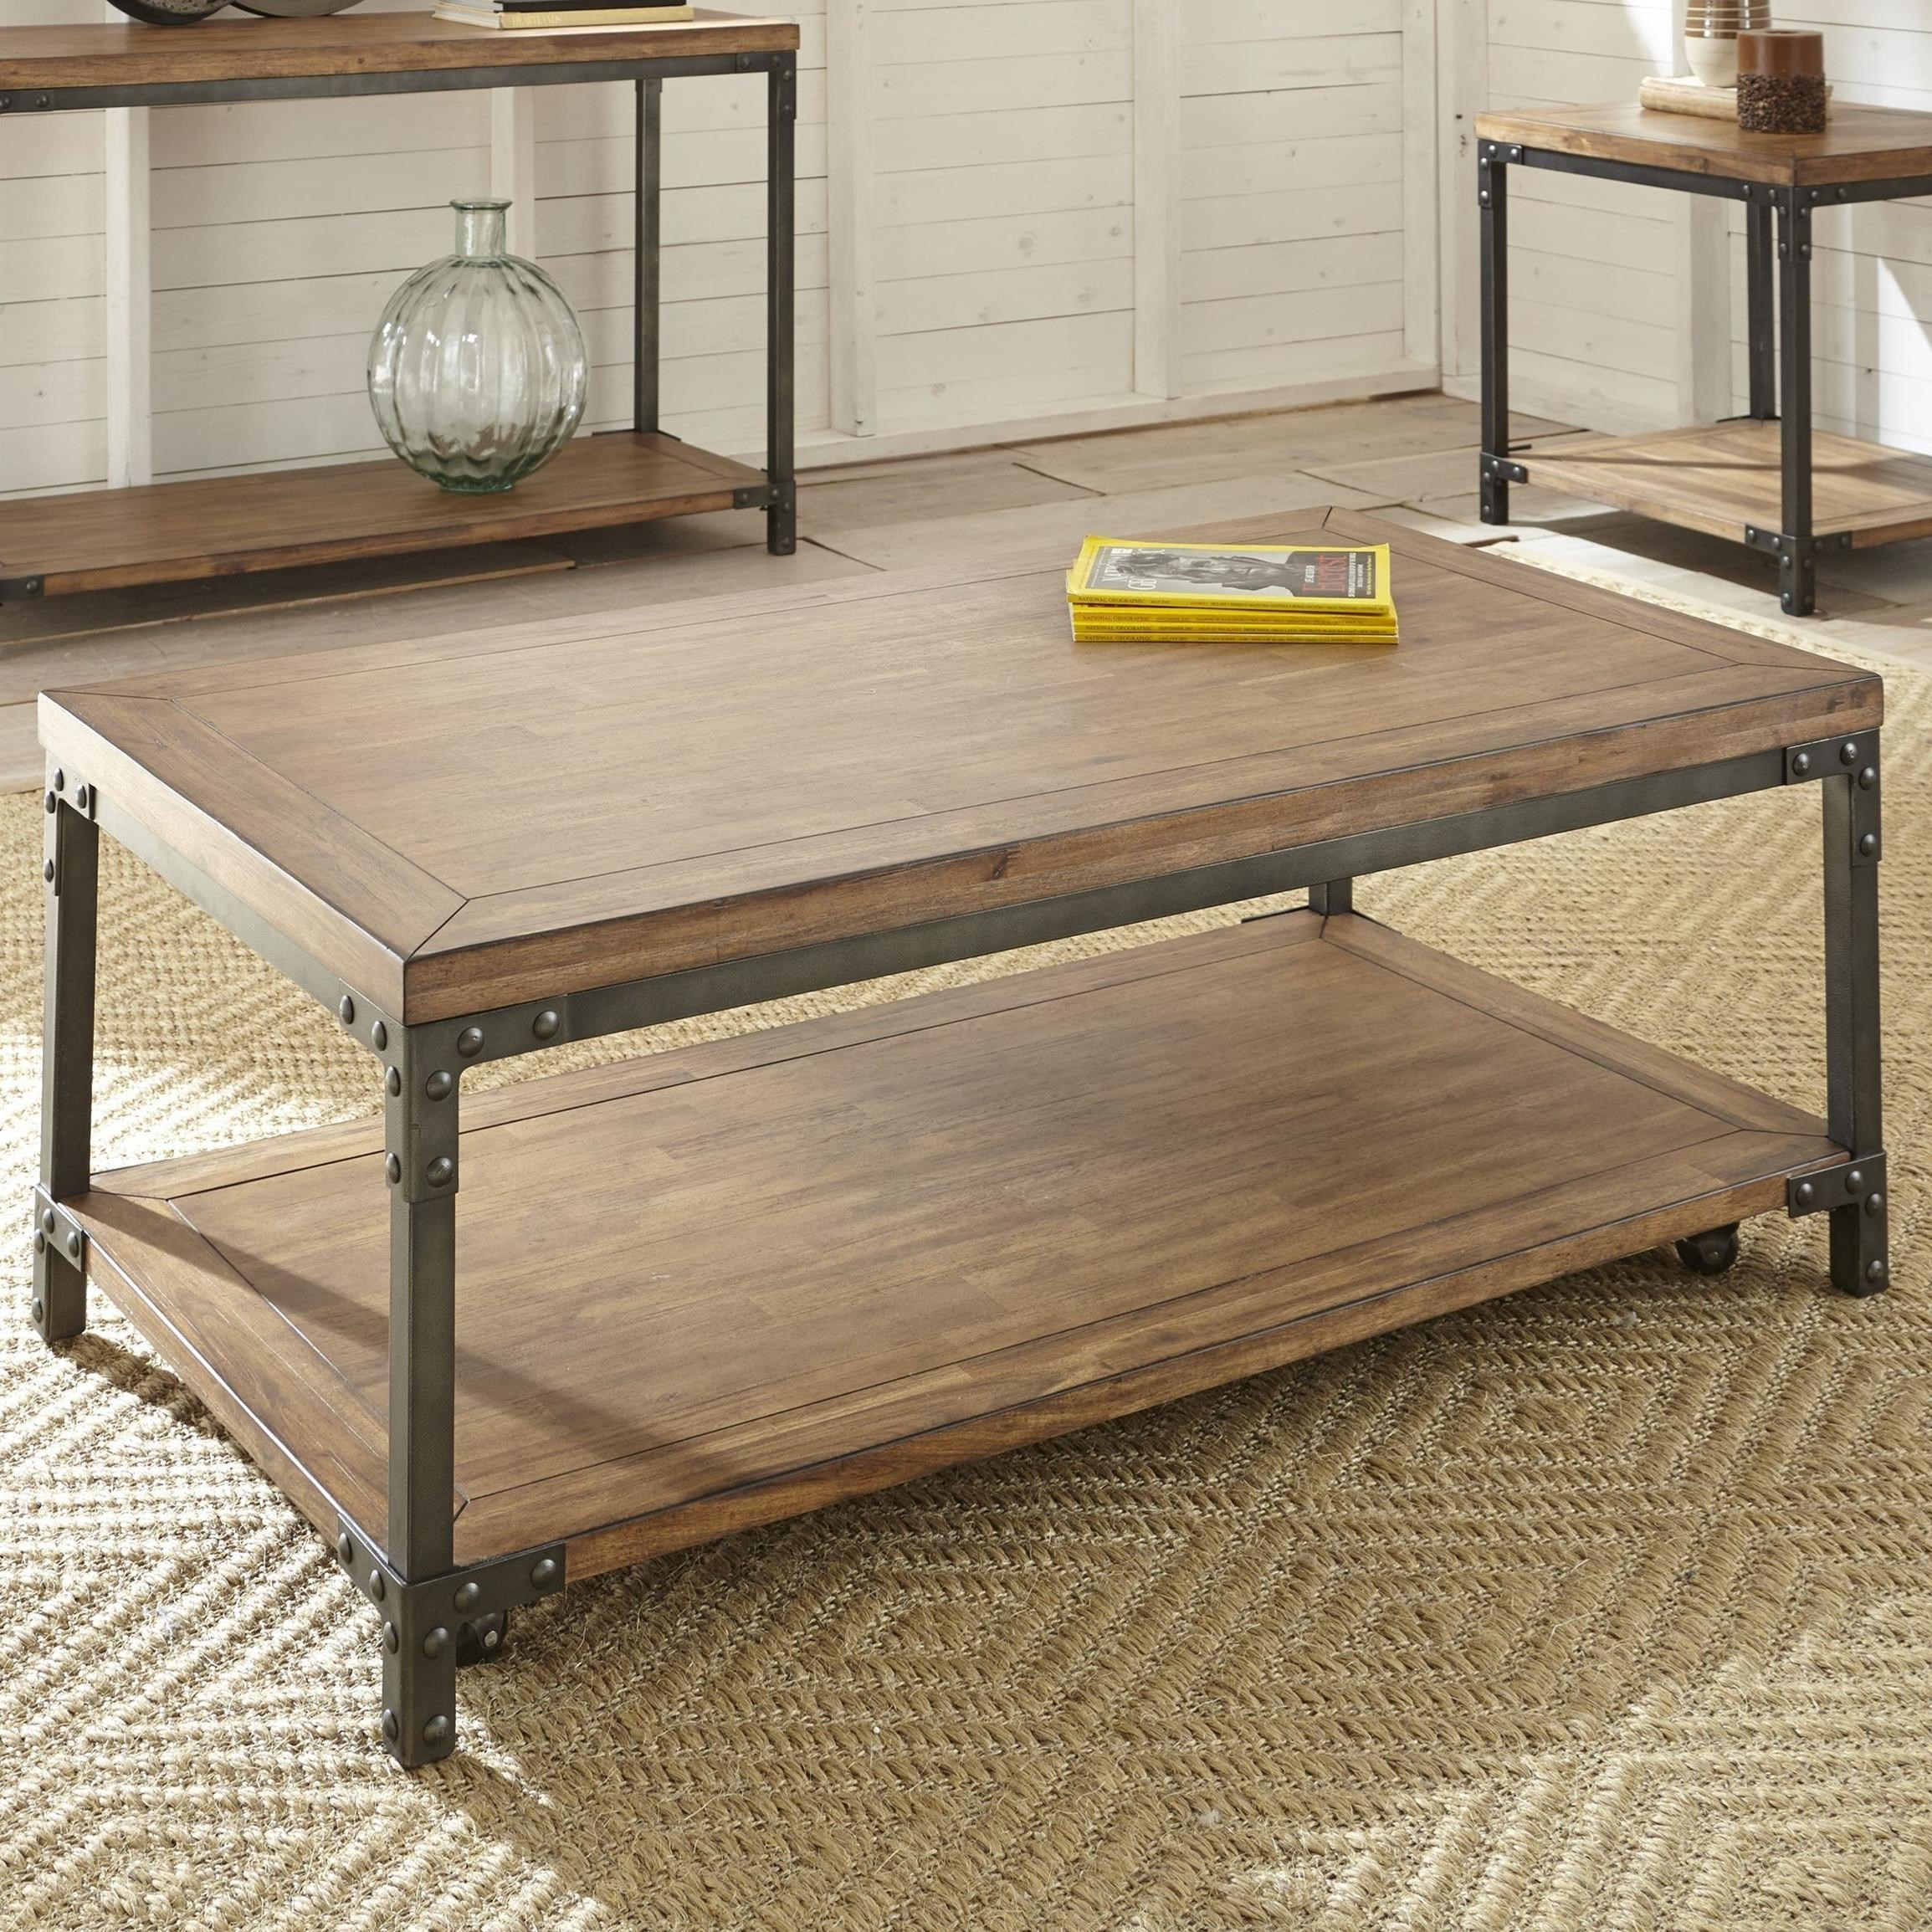 Lantana Cocktail Table with Casters by Steve Silver at Walker's Furniture